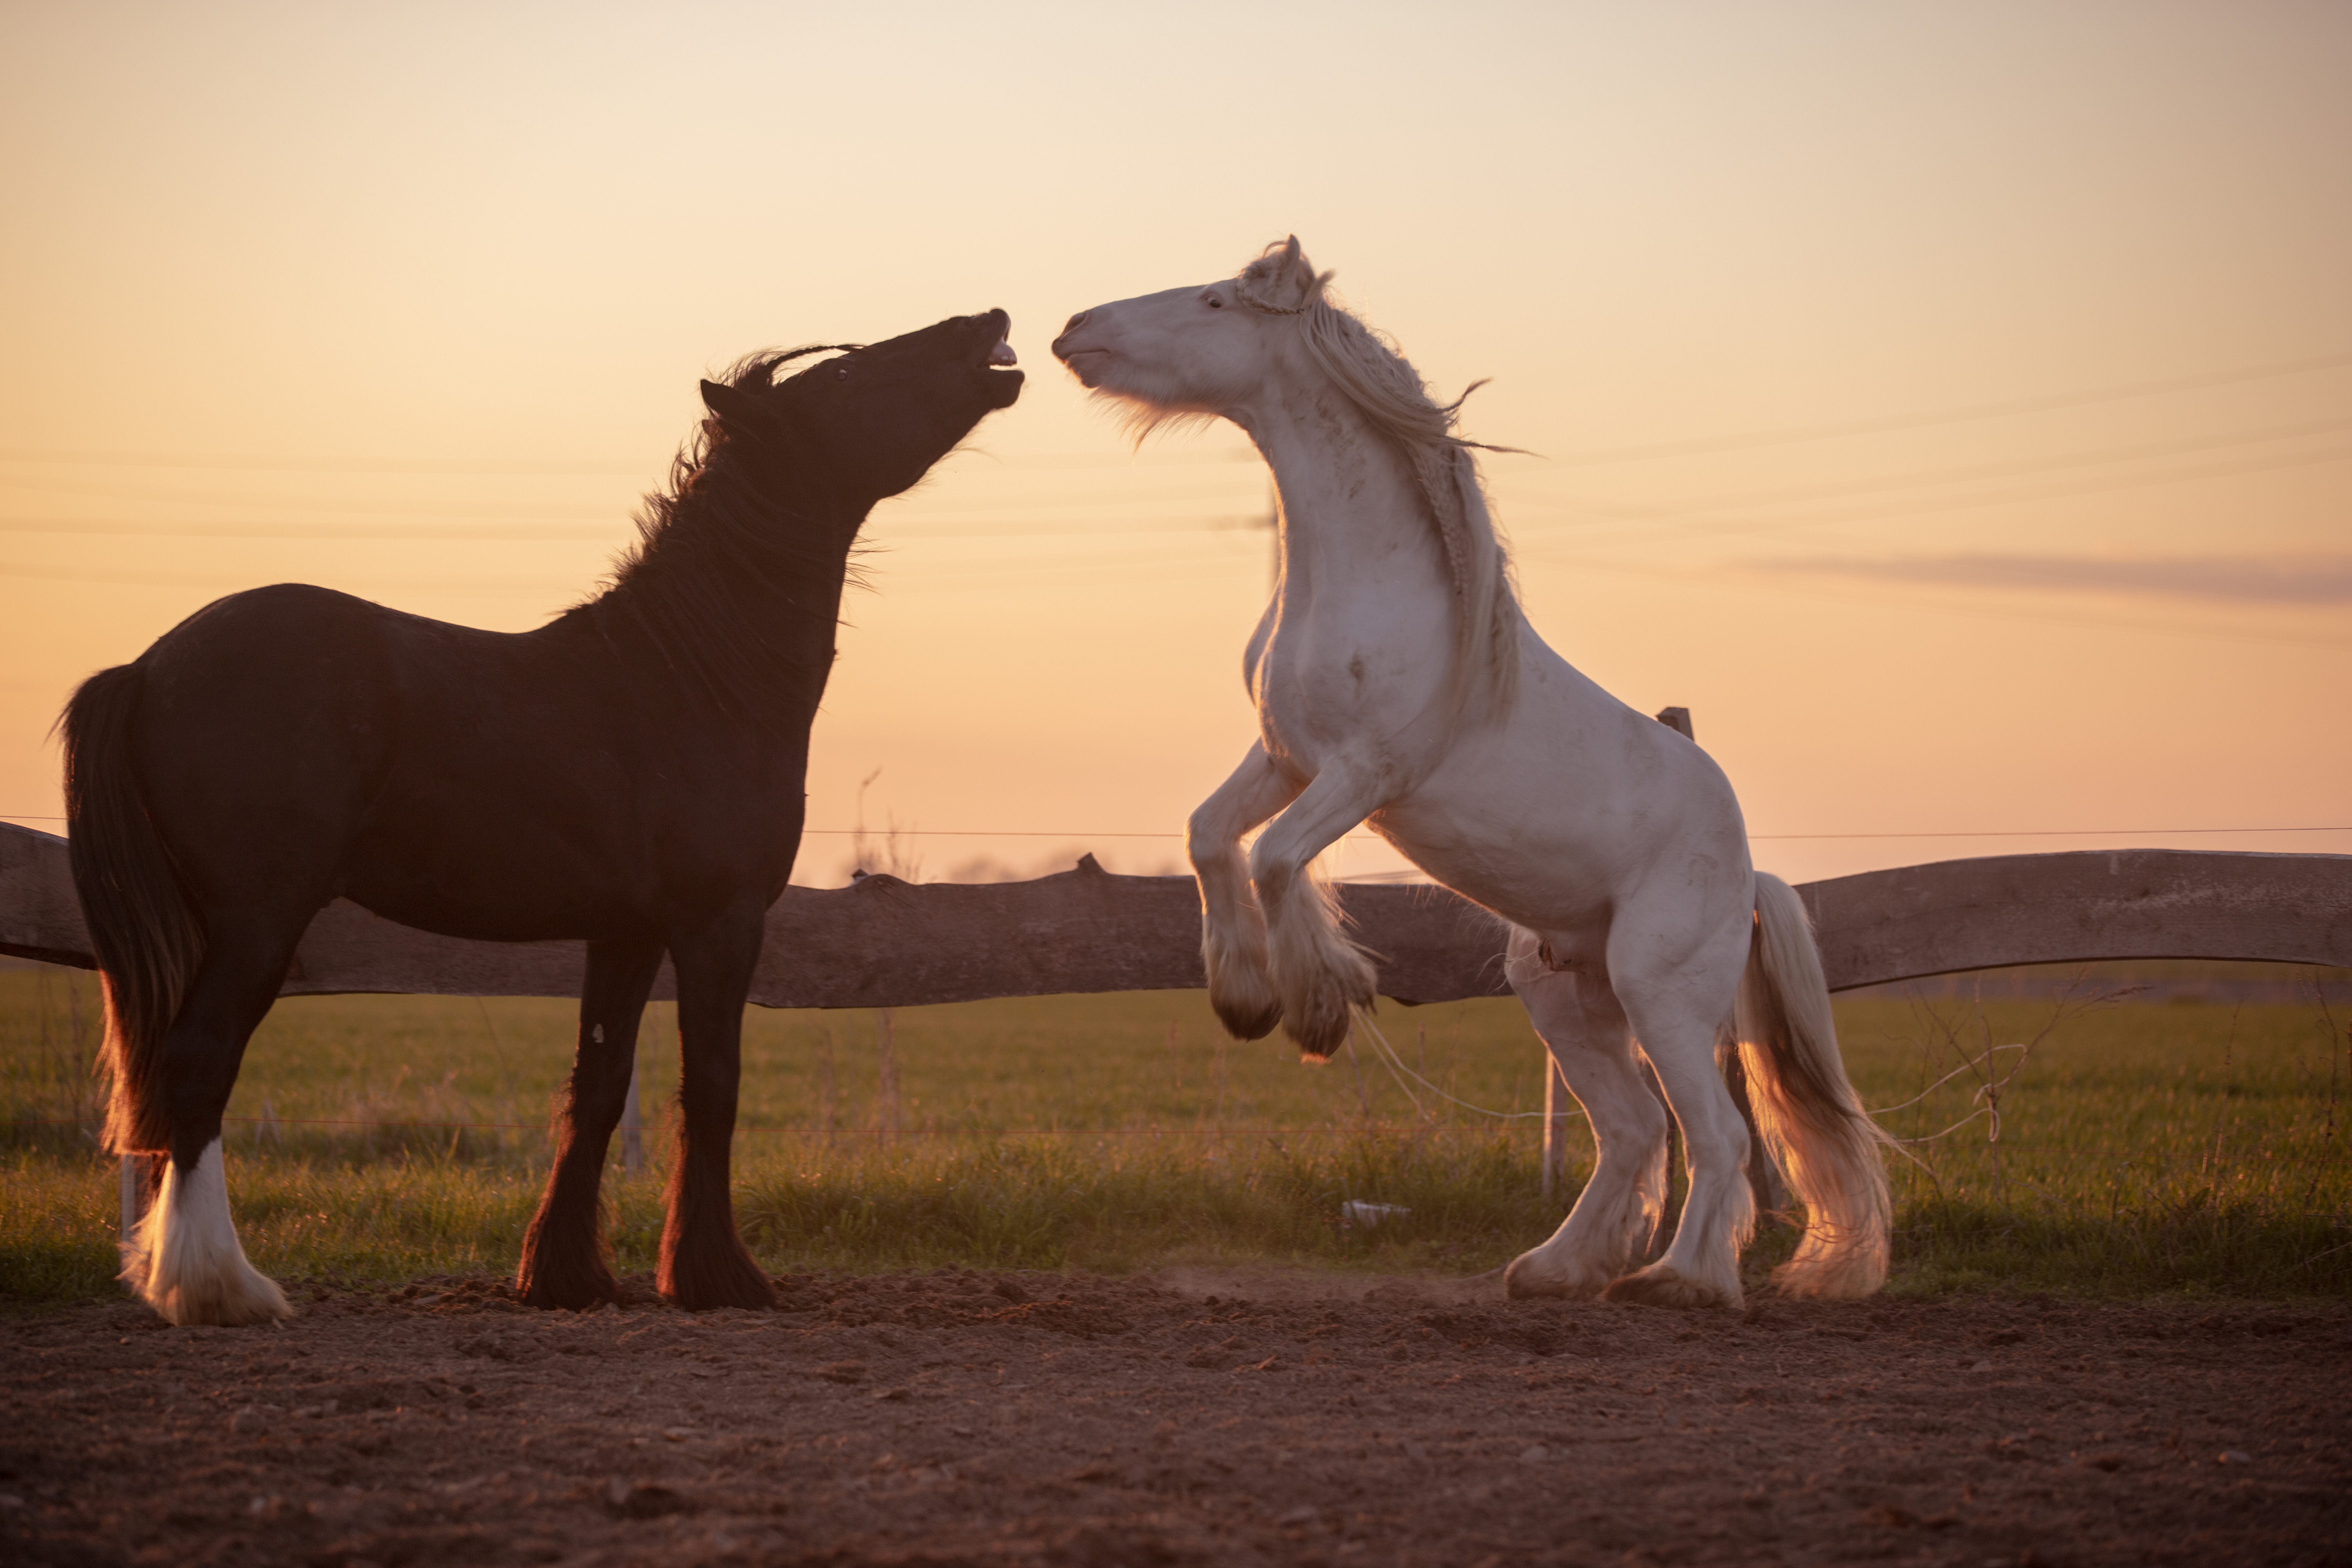 A white and black horse in a field at dusk.